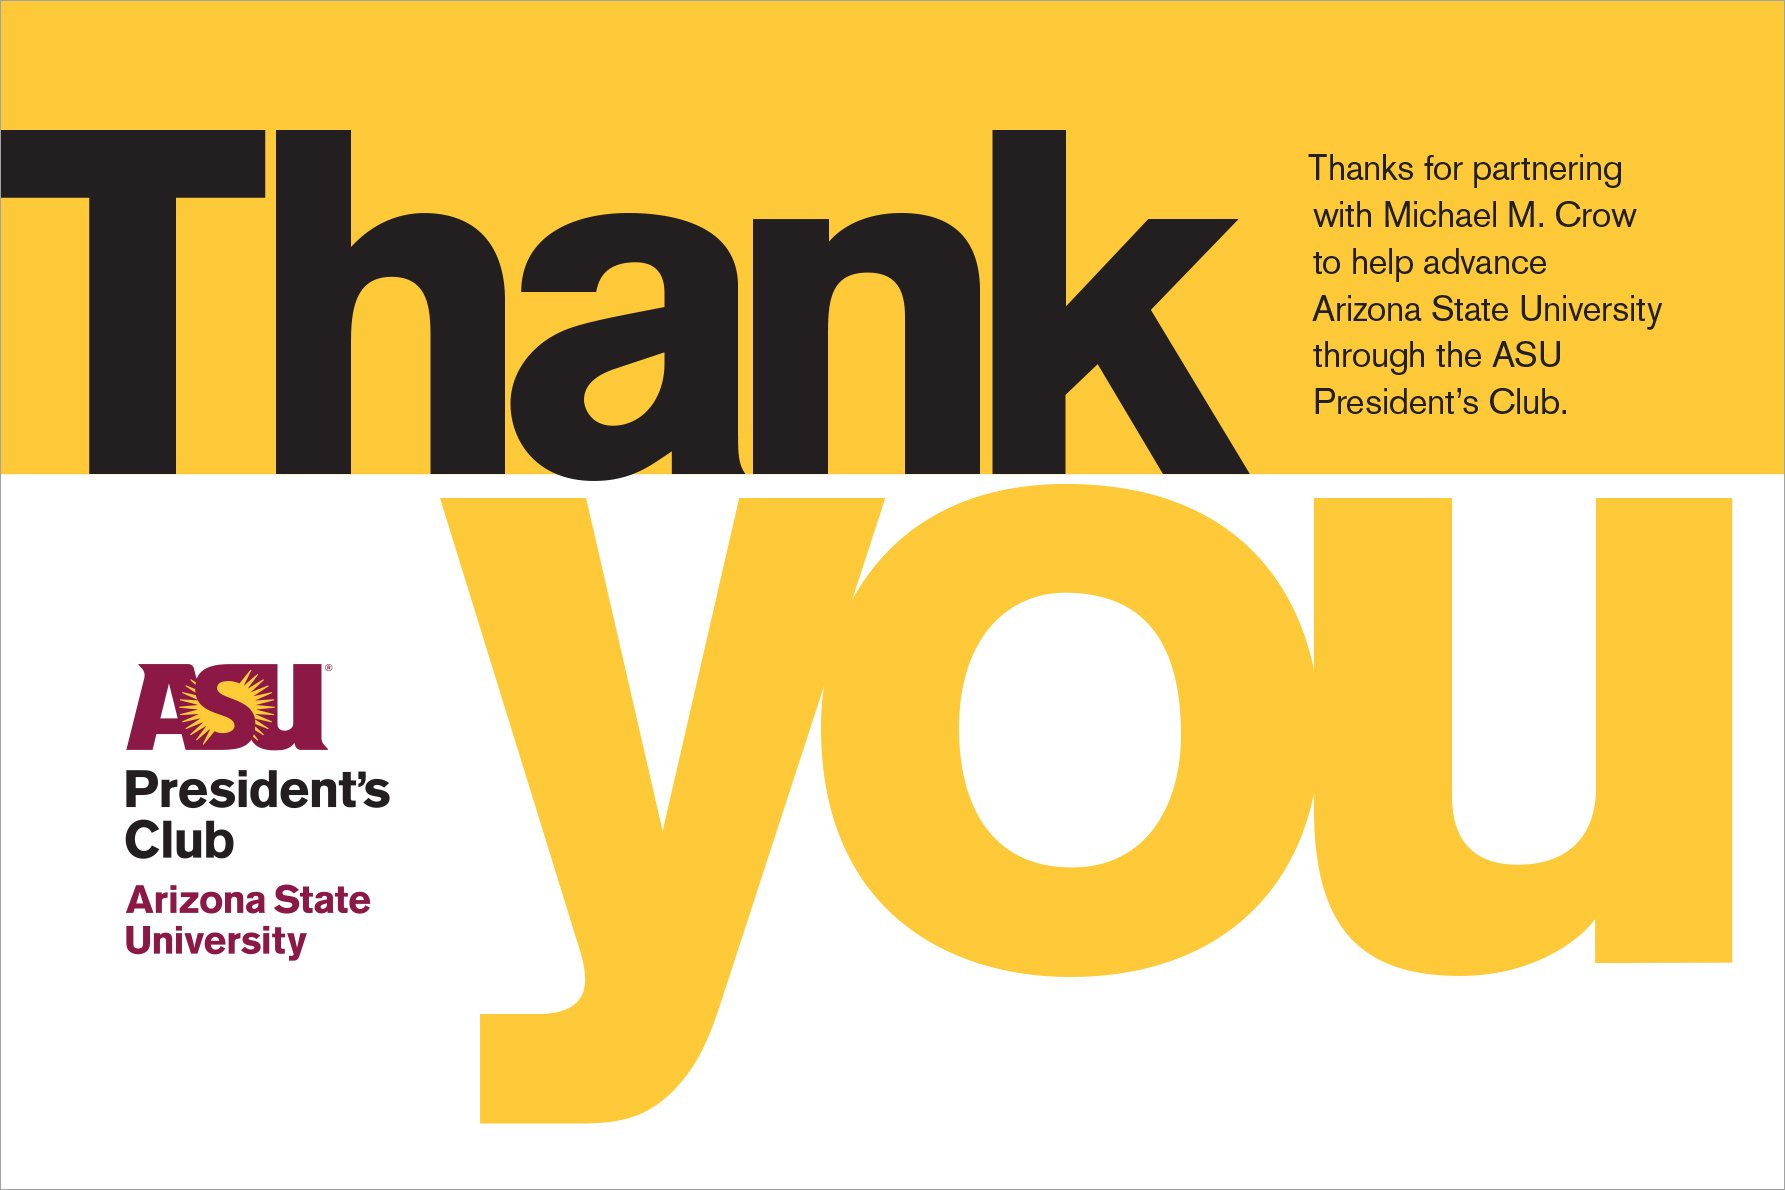 ASU Presidents Club Thank You postcard